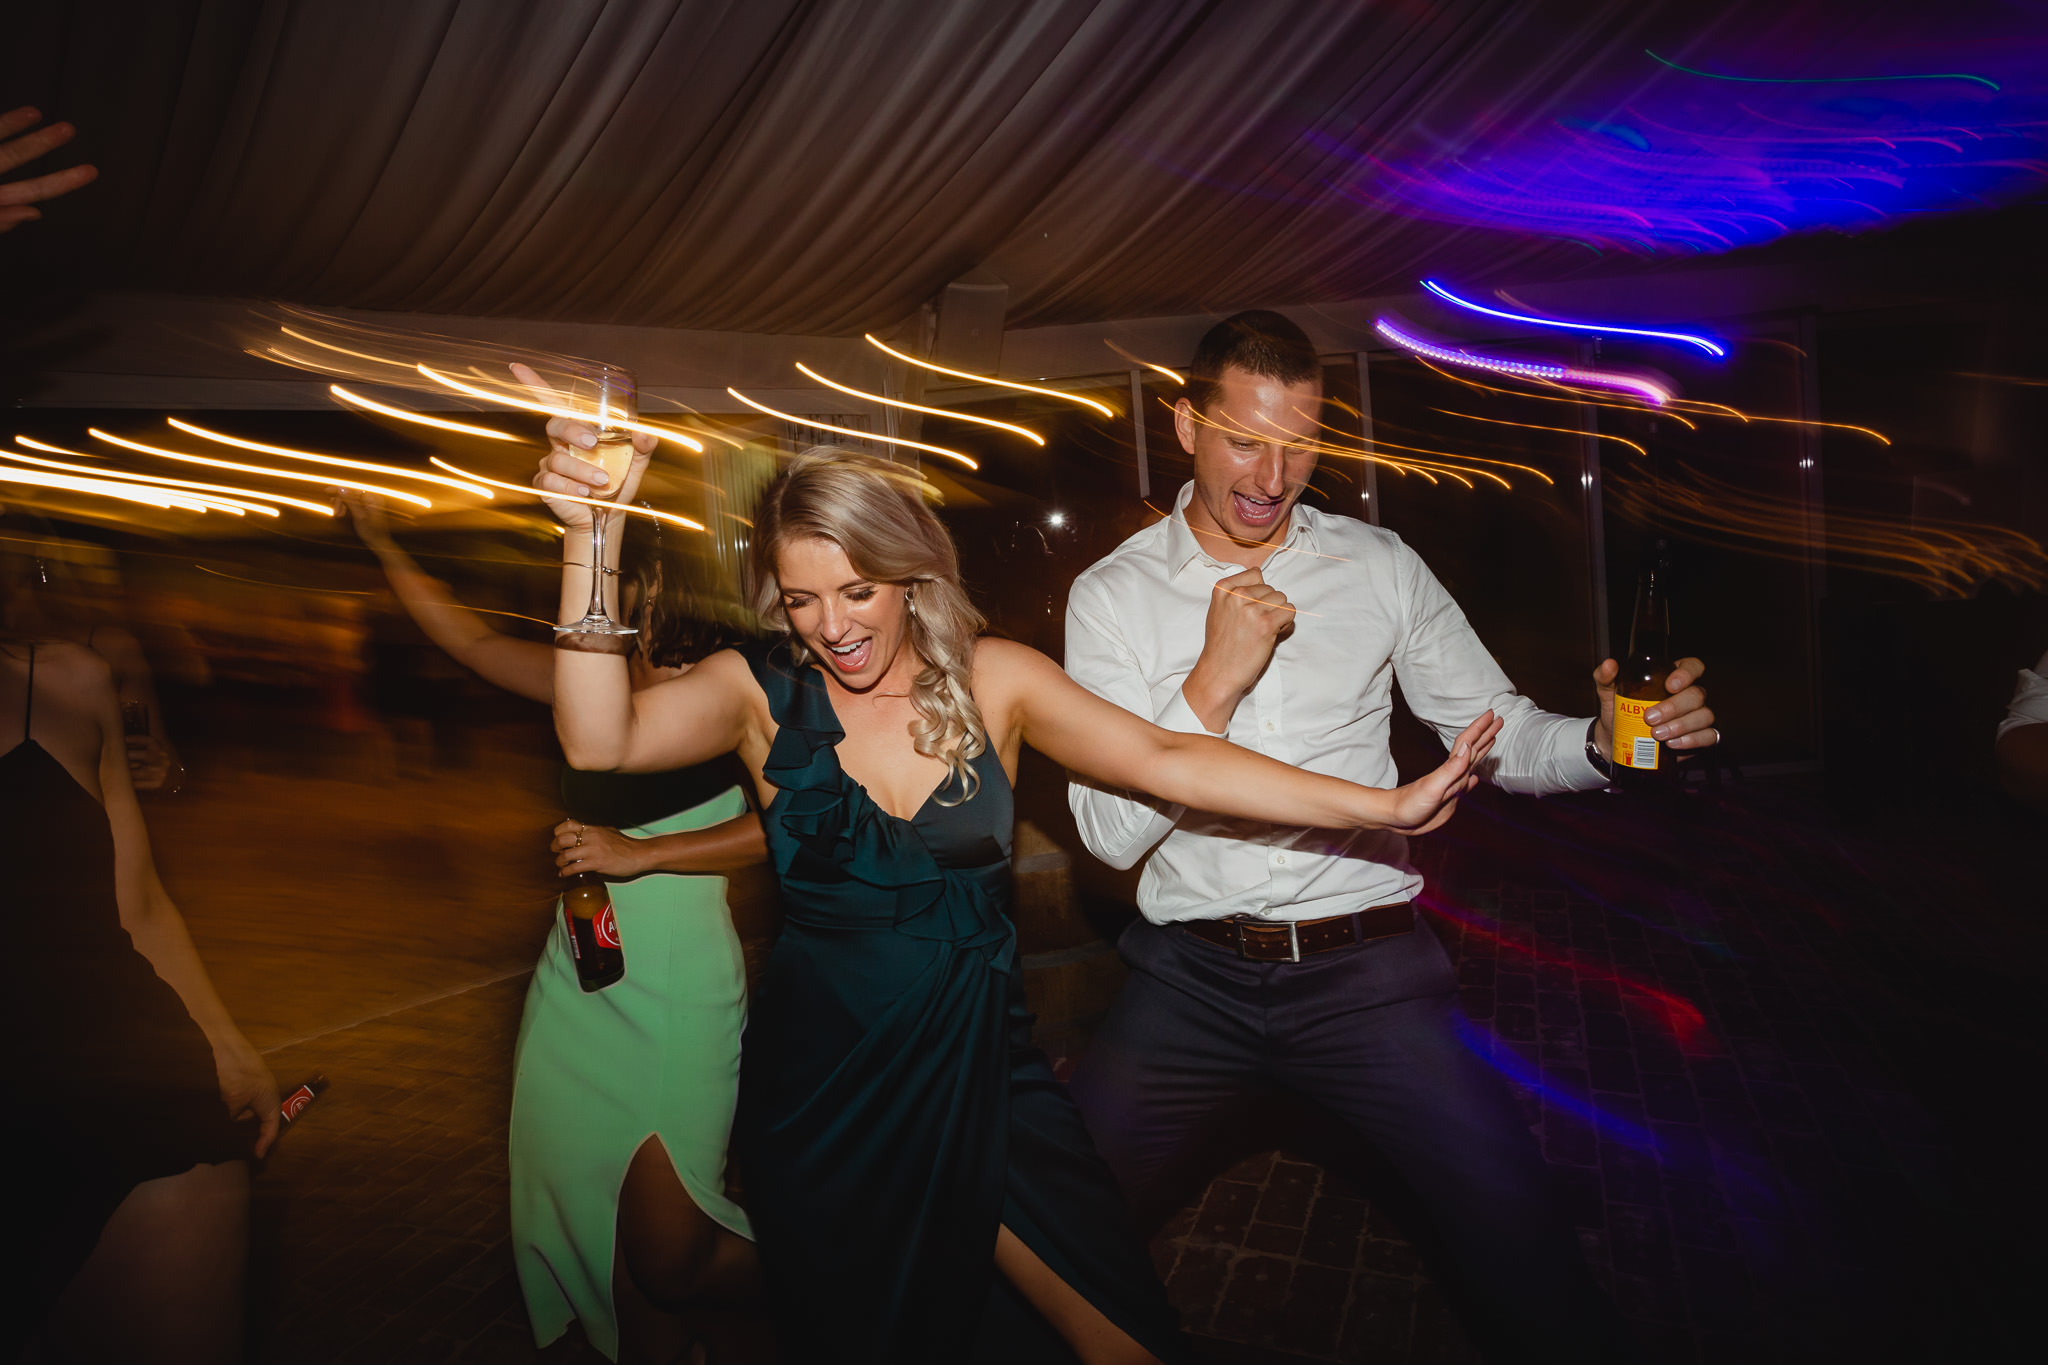 bridesmaid dancing at wedding reception with glass of champagne and light streaks